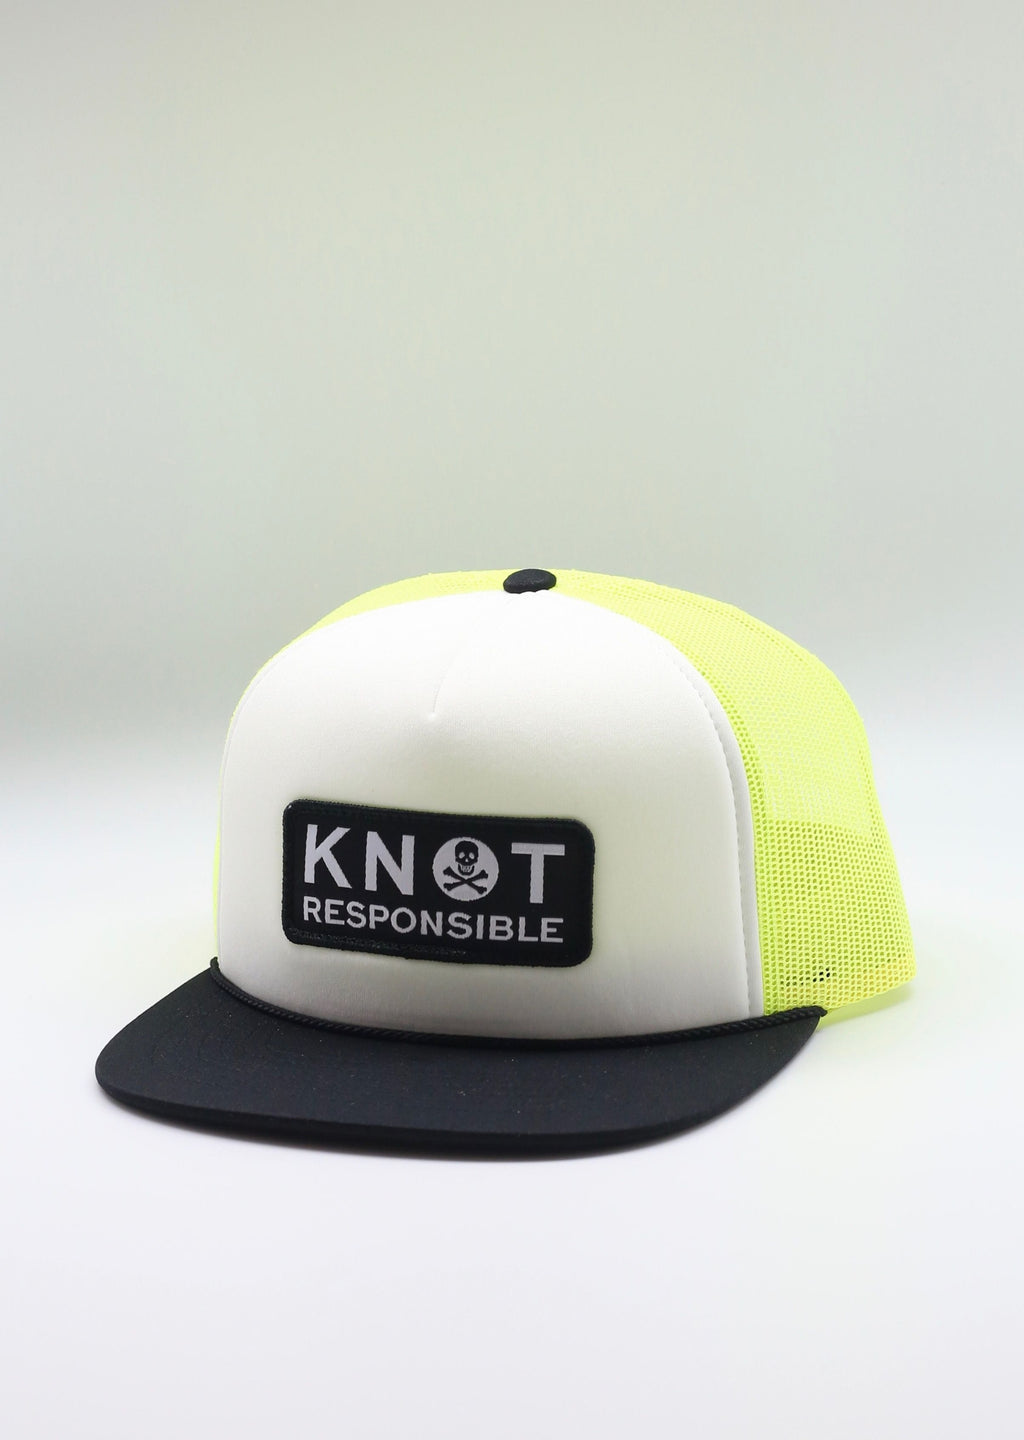 Jolly Roger Foam Trucker Hat- Black/White/ Neon Yellow